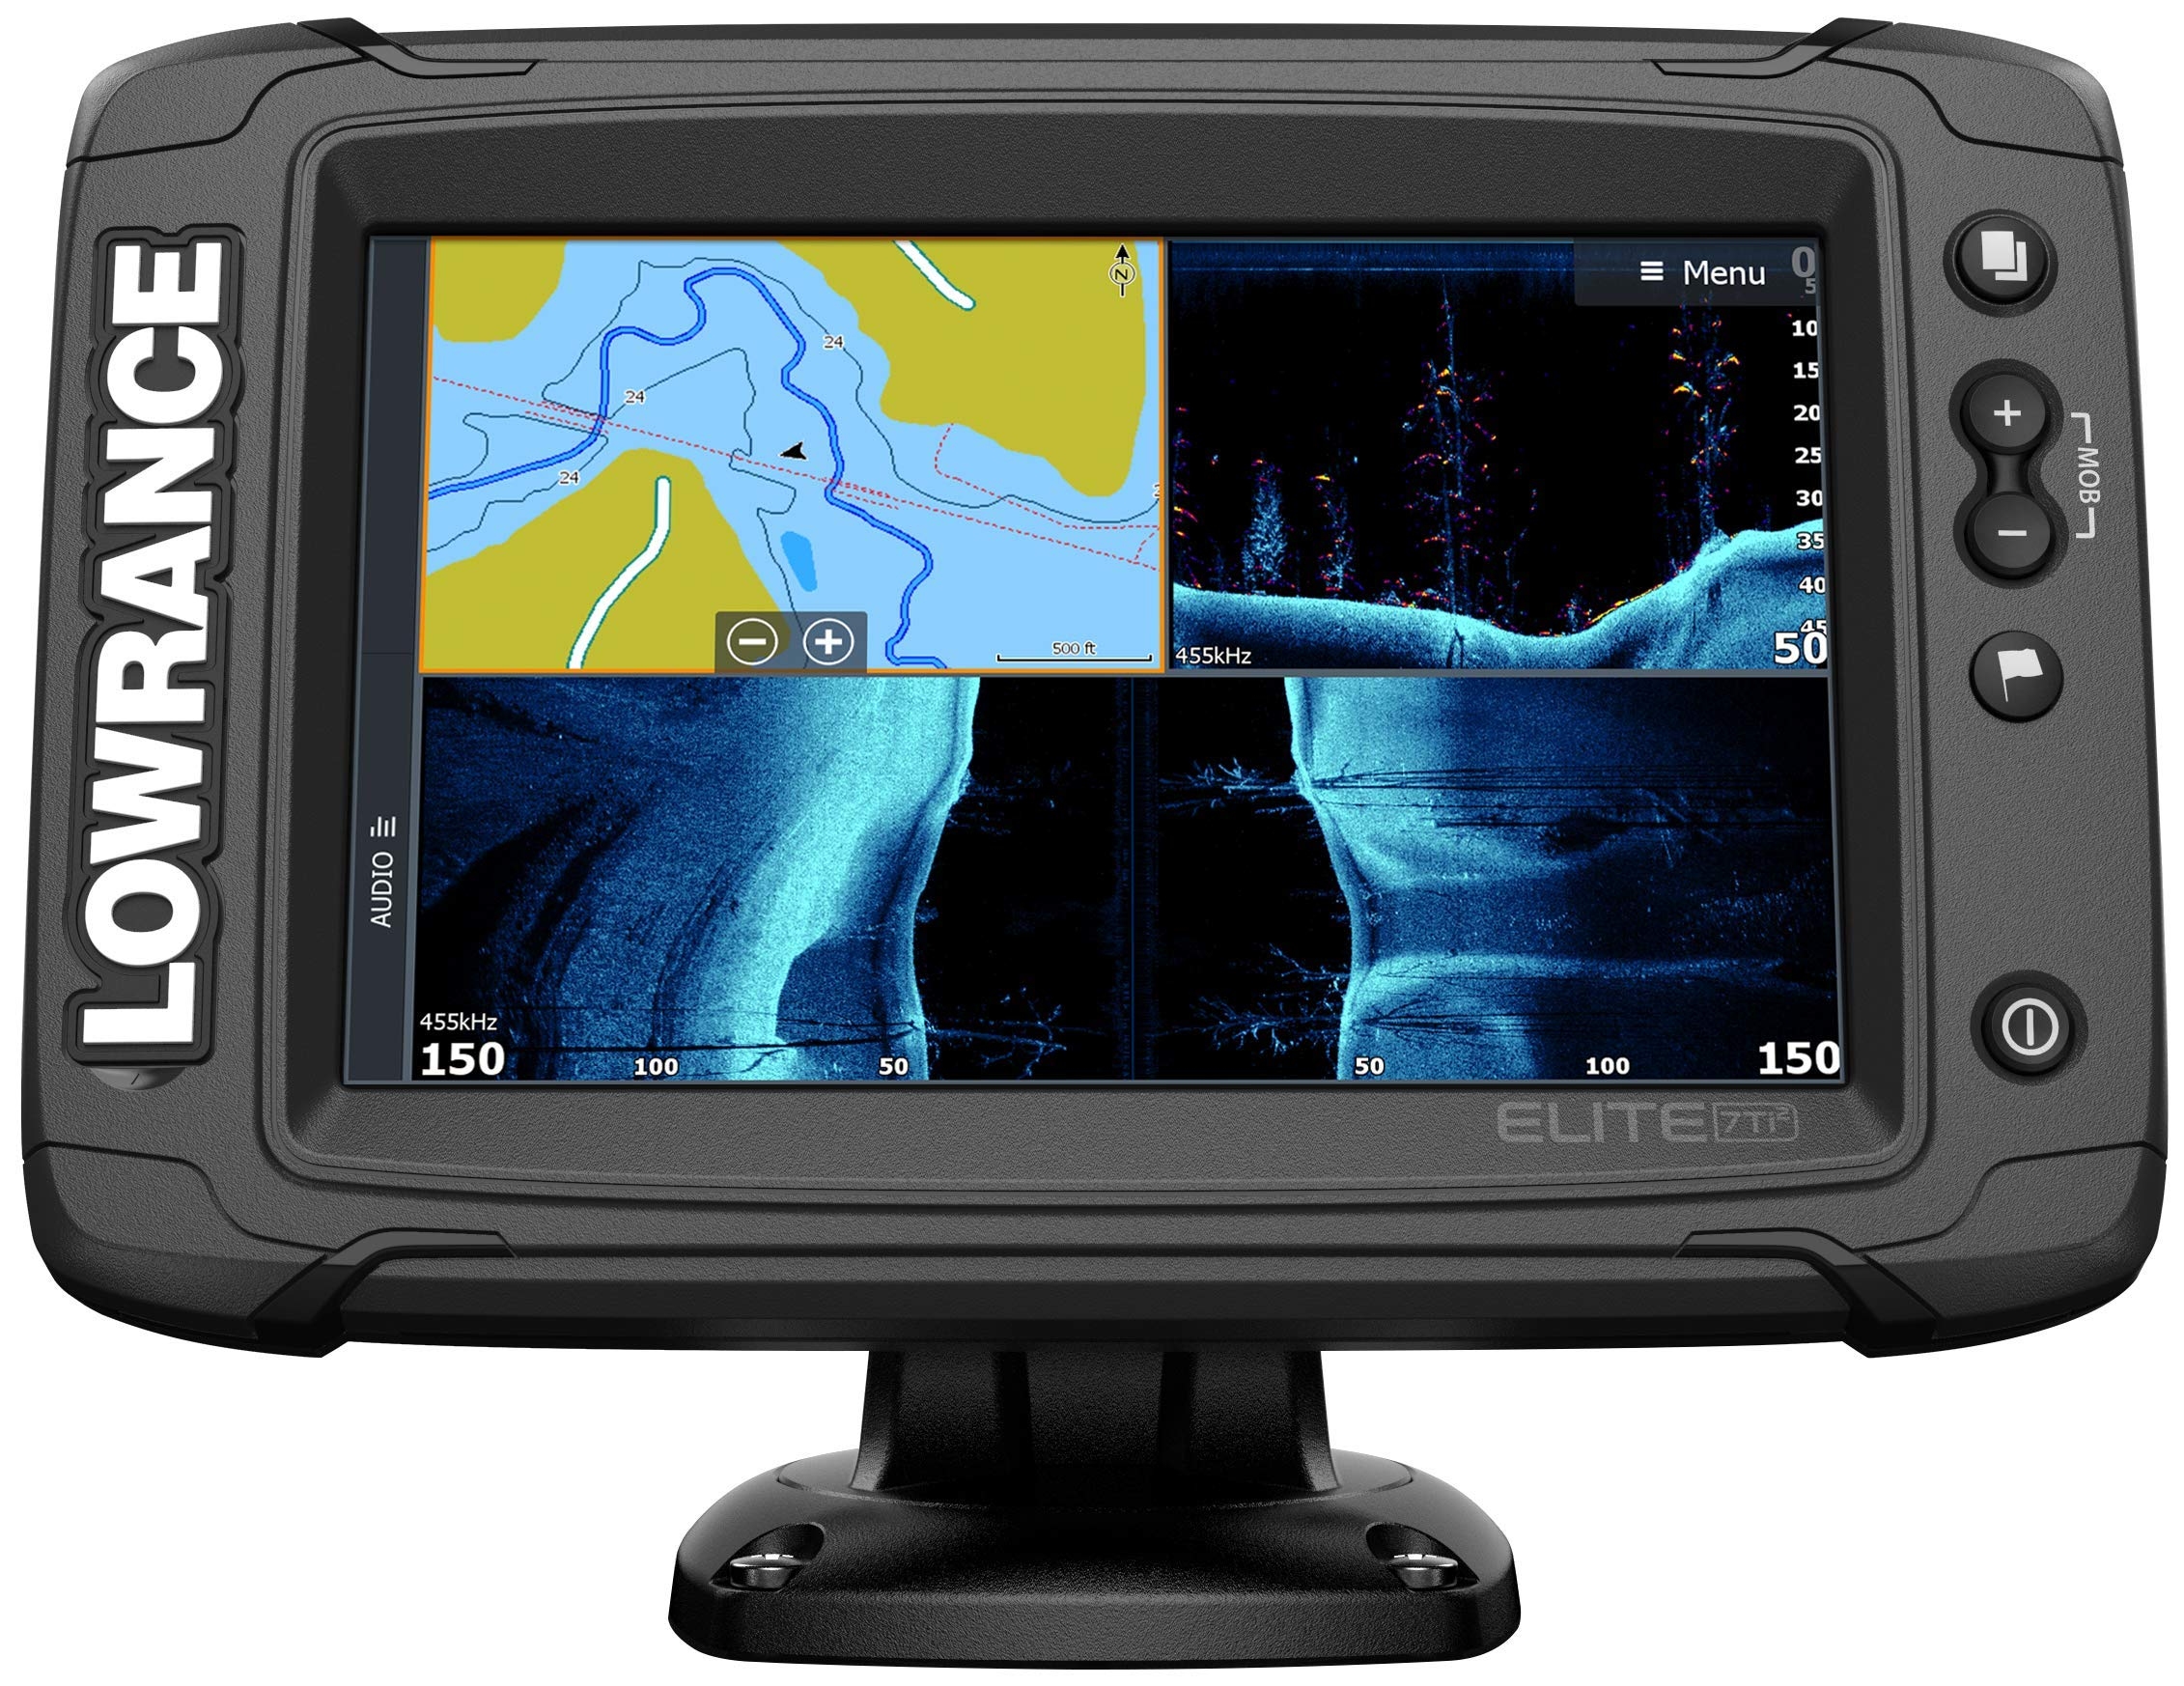 Elite-7 Ti2-7-inch Fish Finder Active Imaging 3-in-1Transducer, Wireless Networking, Real-Time Map Creation Preloaded C-MAP US Inland Mapping ... by Lowrance